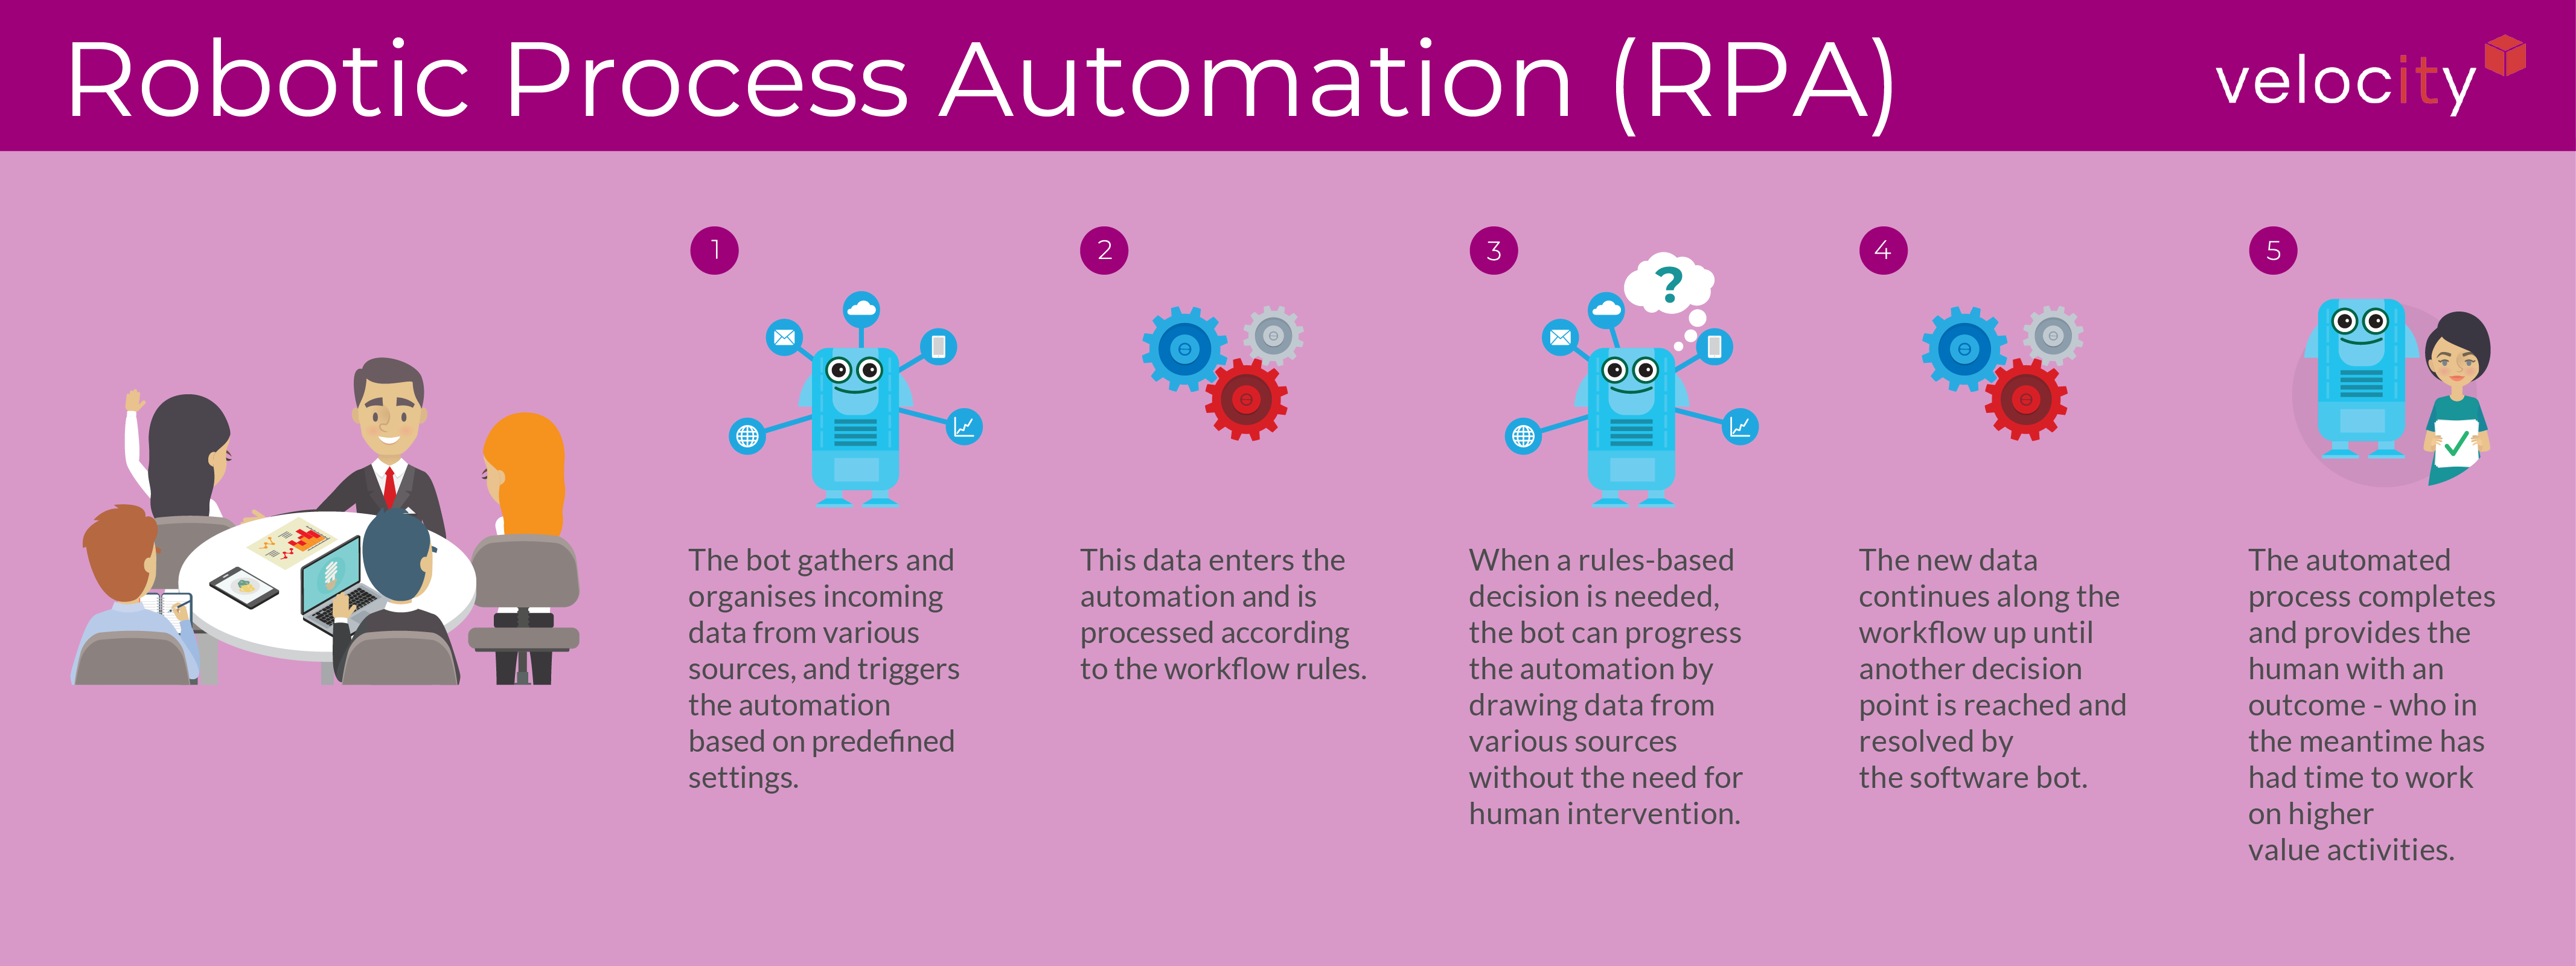 RPA Explained